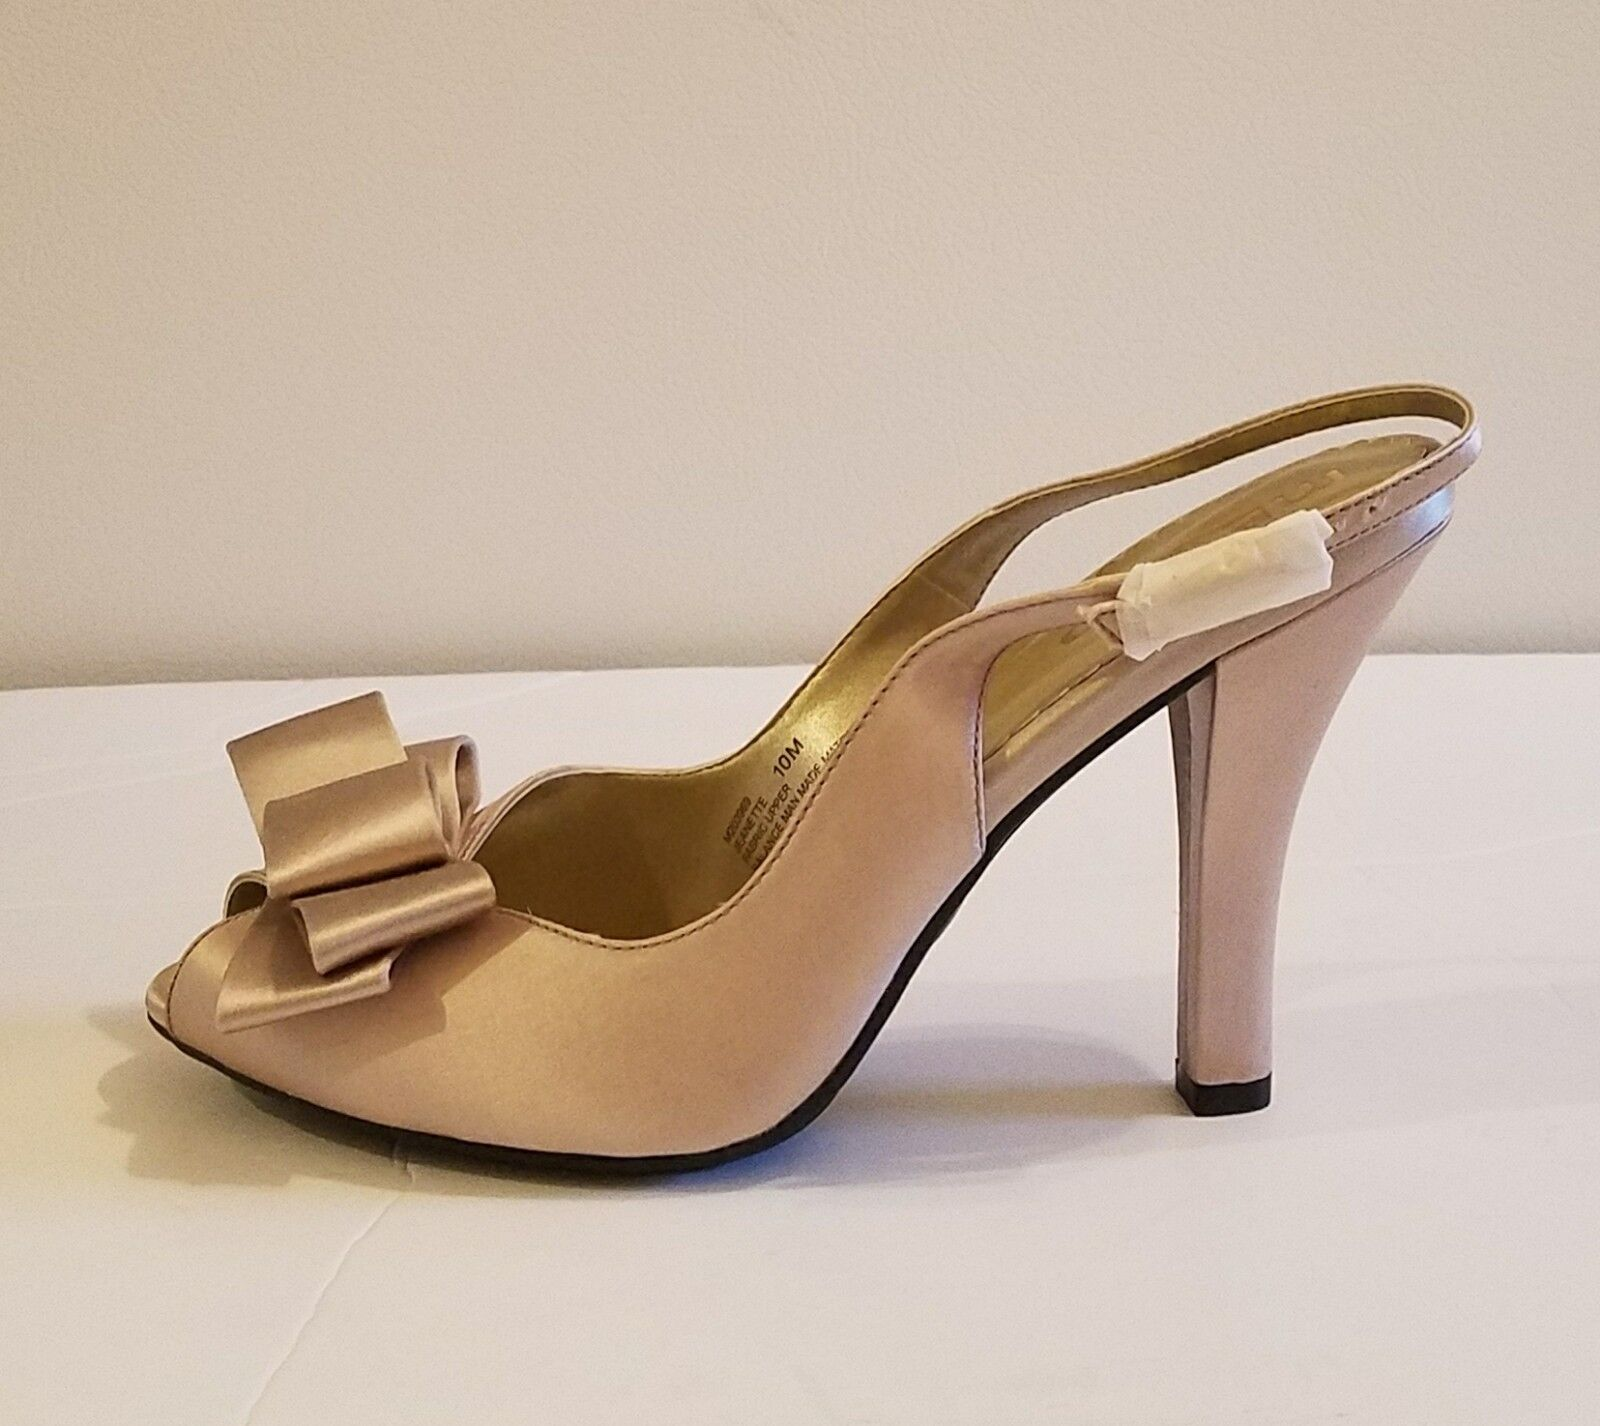 Me Too Ladies' Peeptoe Jeanette Satin Bow Sandals Champagne  sz 10m As is